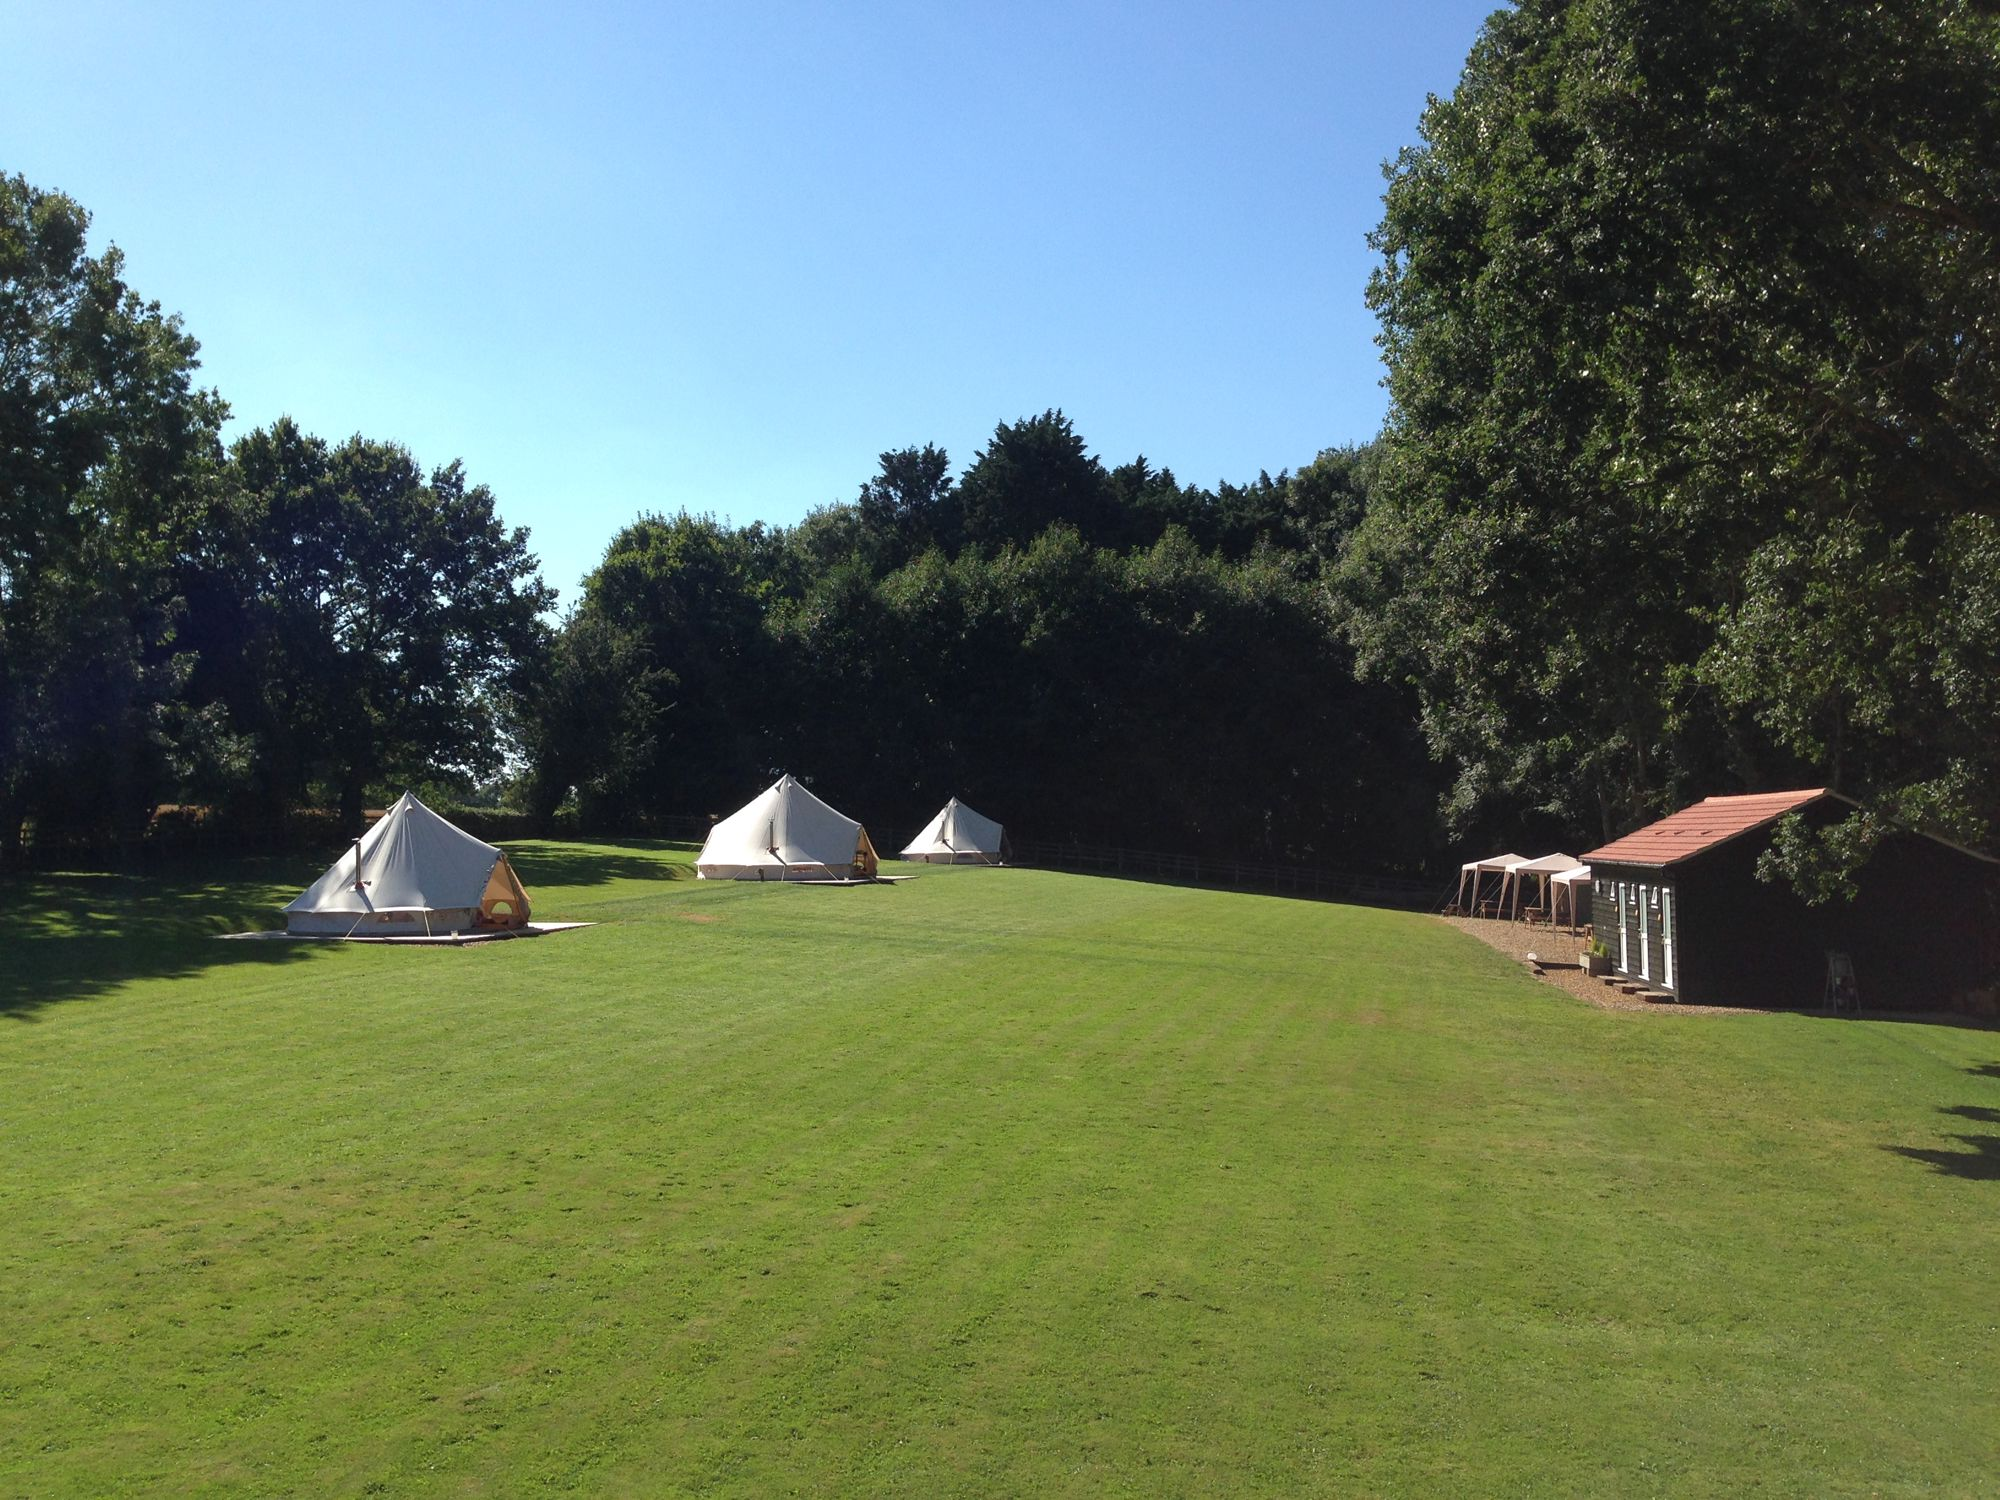 Small-scale luxury bell tent glamping in Oxnead, half way between Norwich and the Norfolk coast.